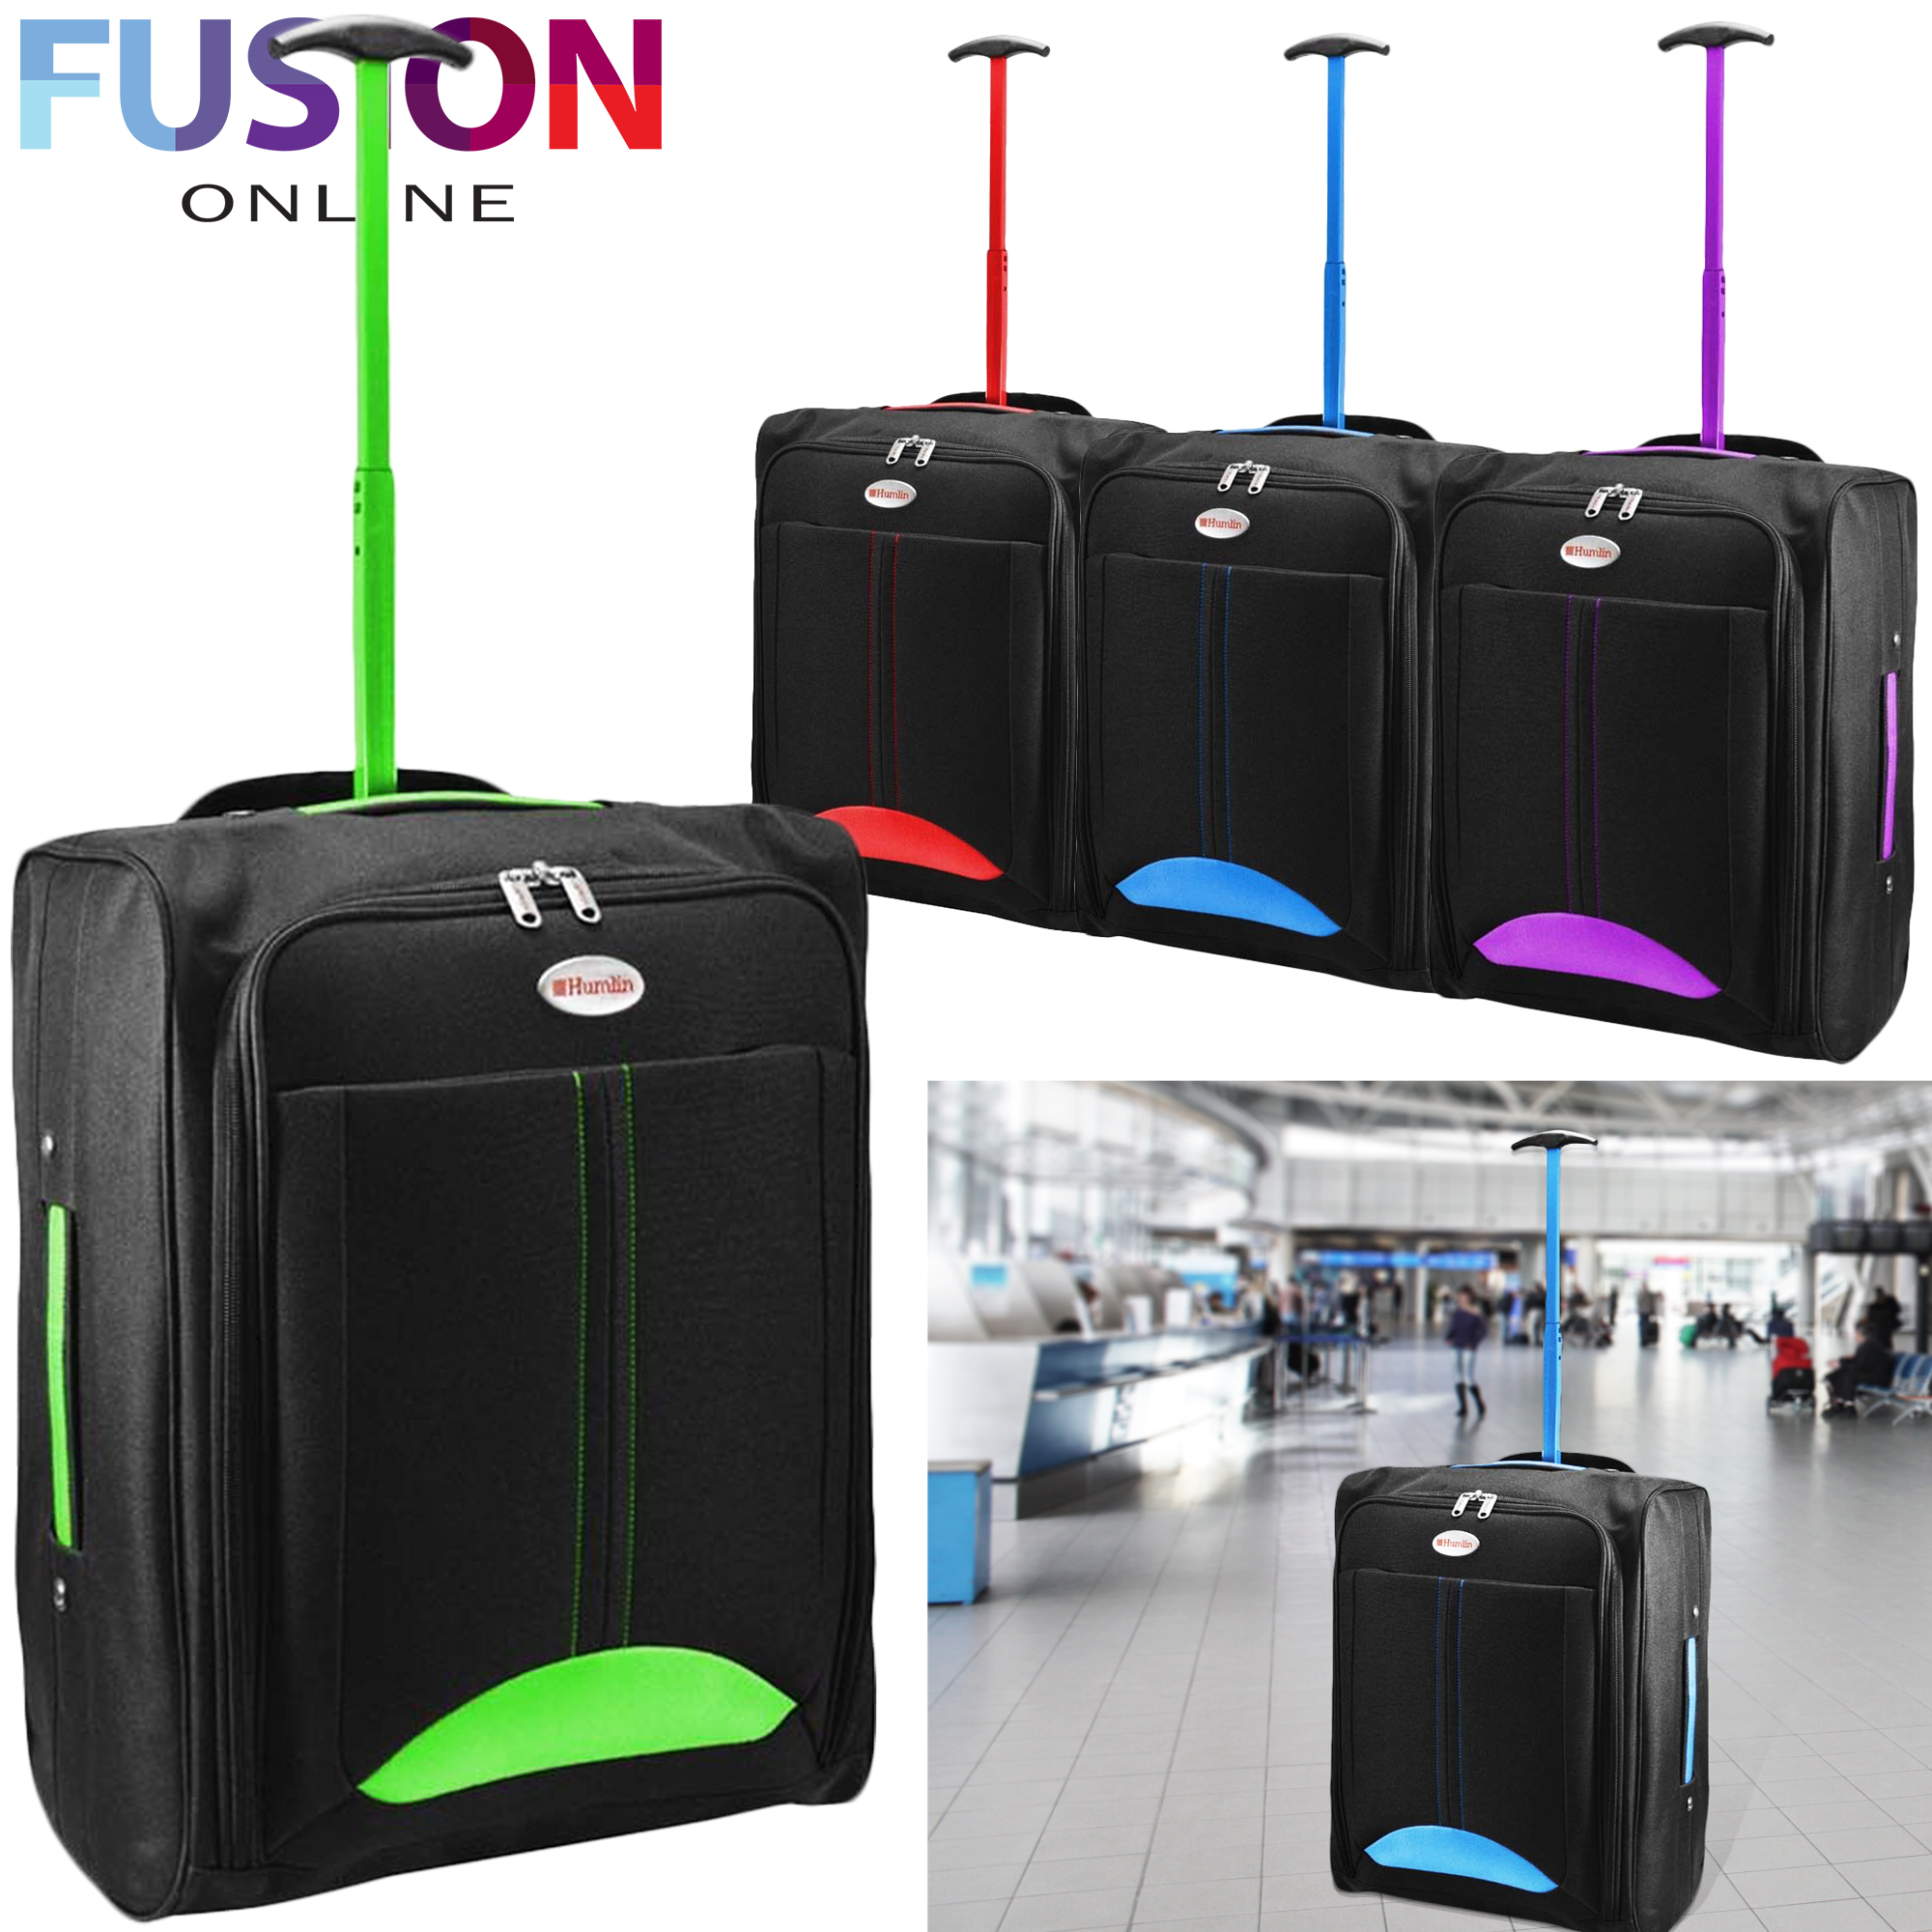 f3bee1b75 Details about Cabin Hand Suitcase Luggage Bag Travel Wheeled Lightweight  Trolley Holdall New